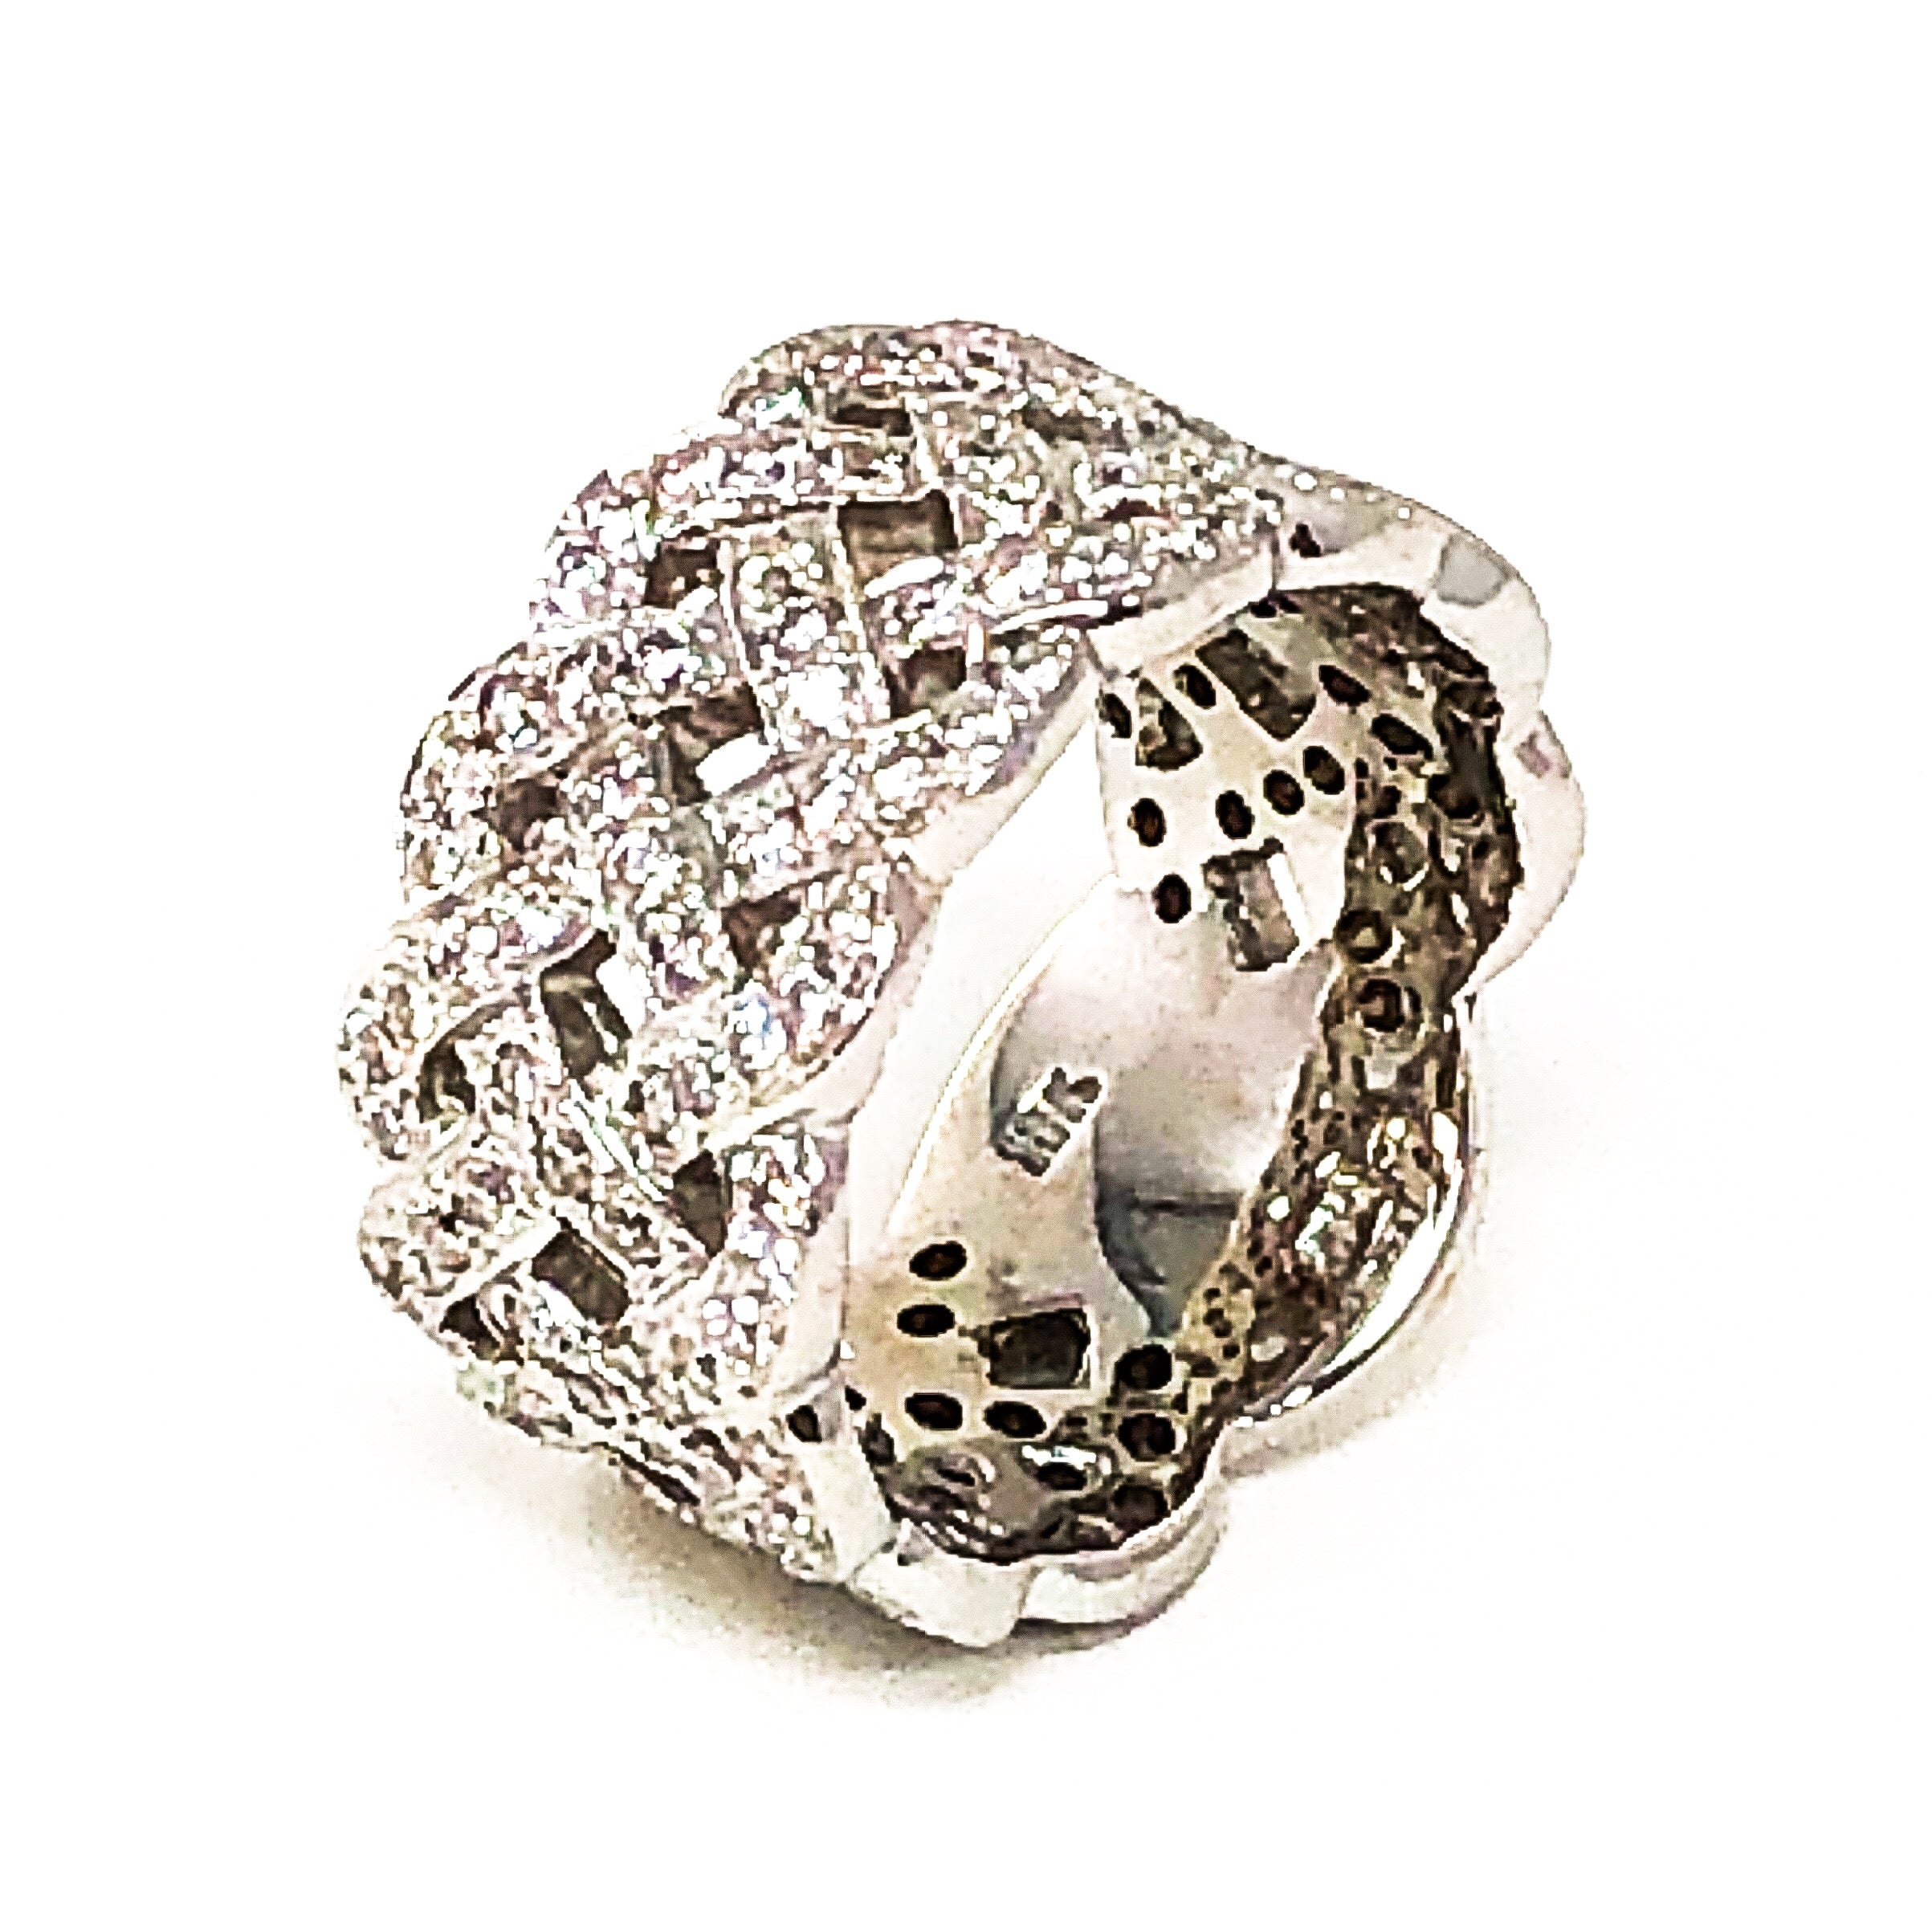 18kt White Gold Ring with Woven Diamond Pave